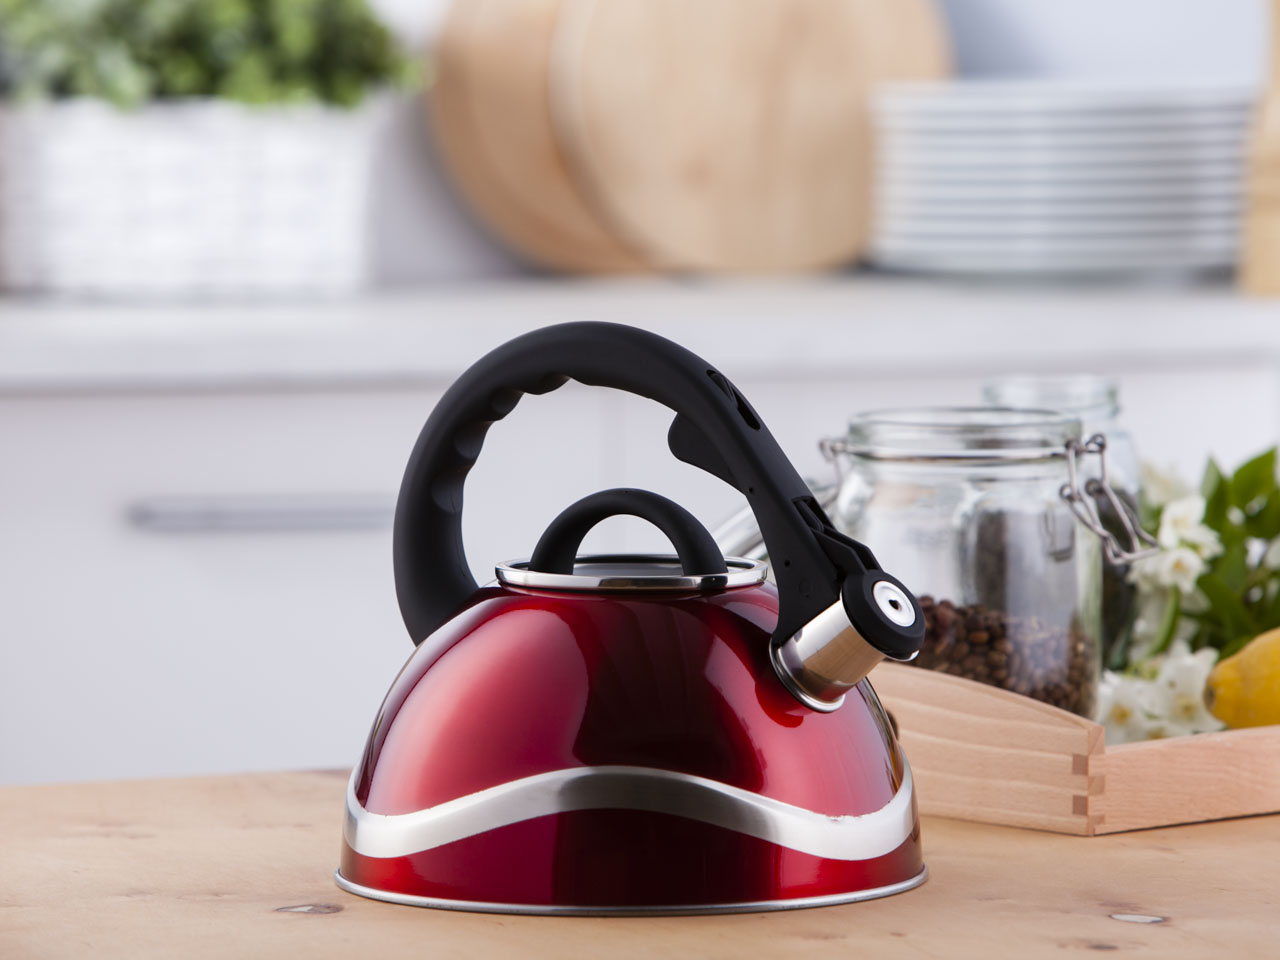 Stainless steel whistling kettle Tango red 2,8l.